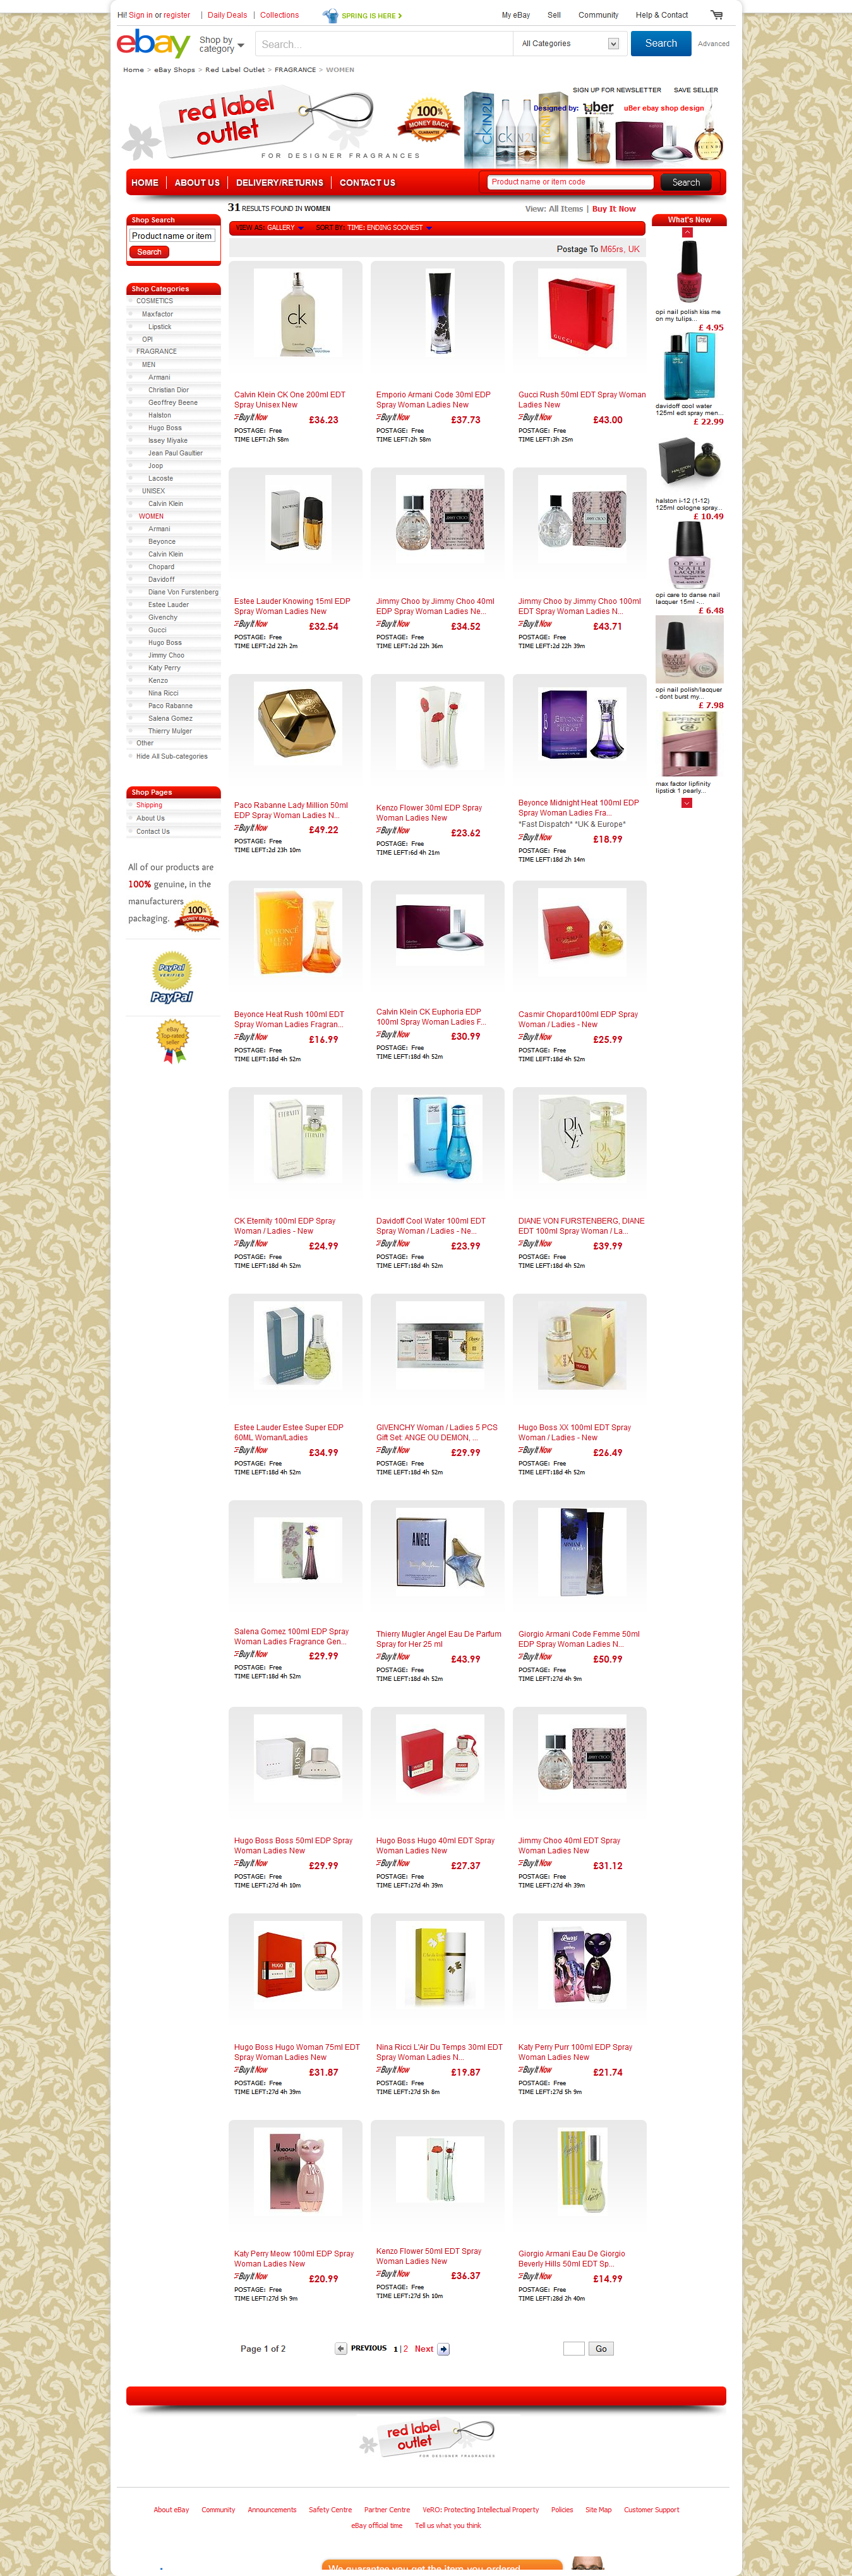 Red Label Outlet category page ebay shop design